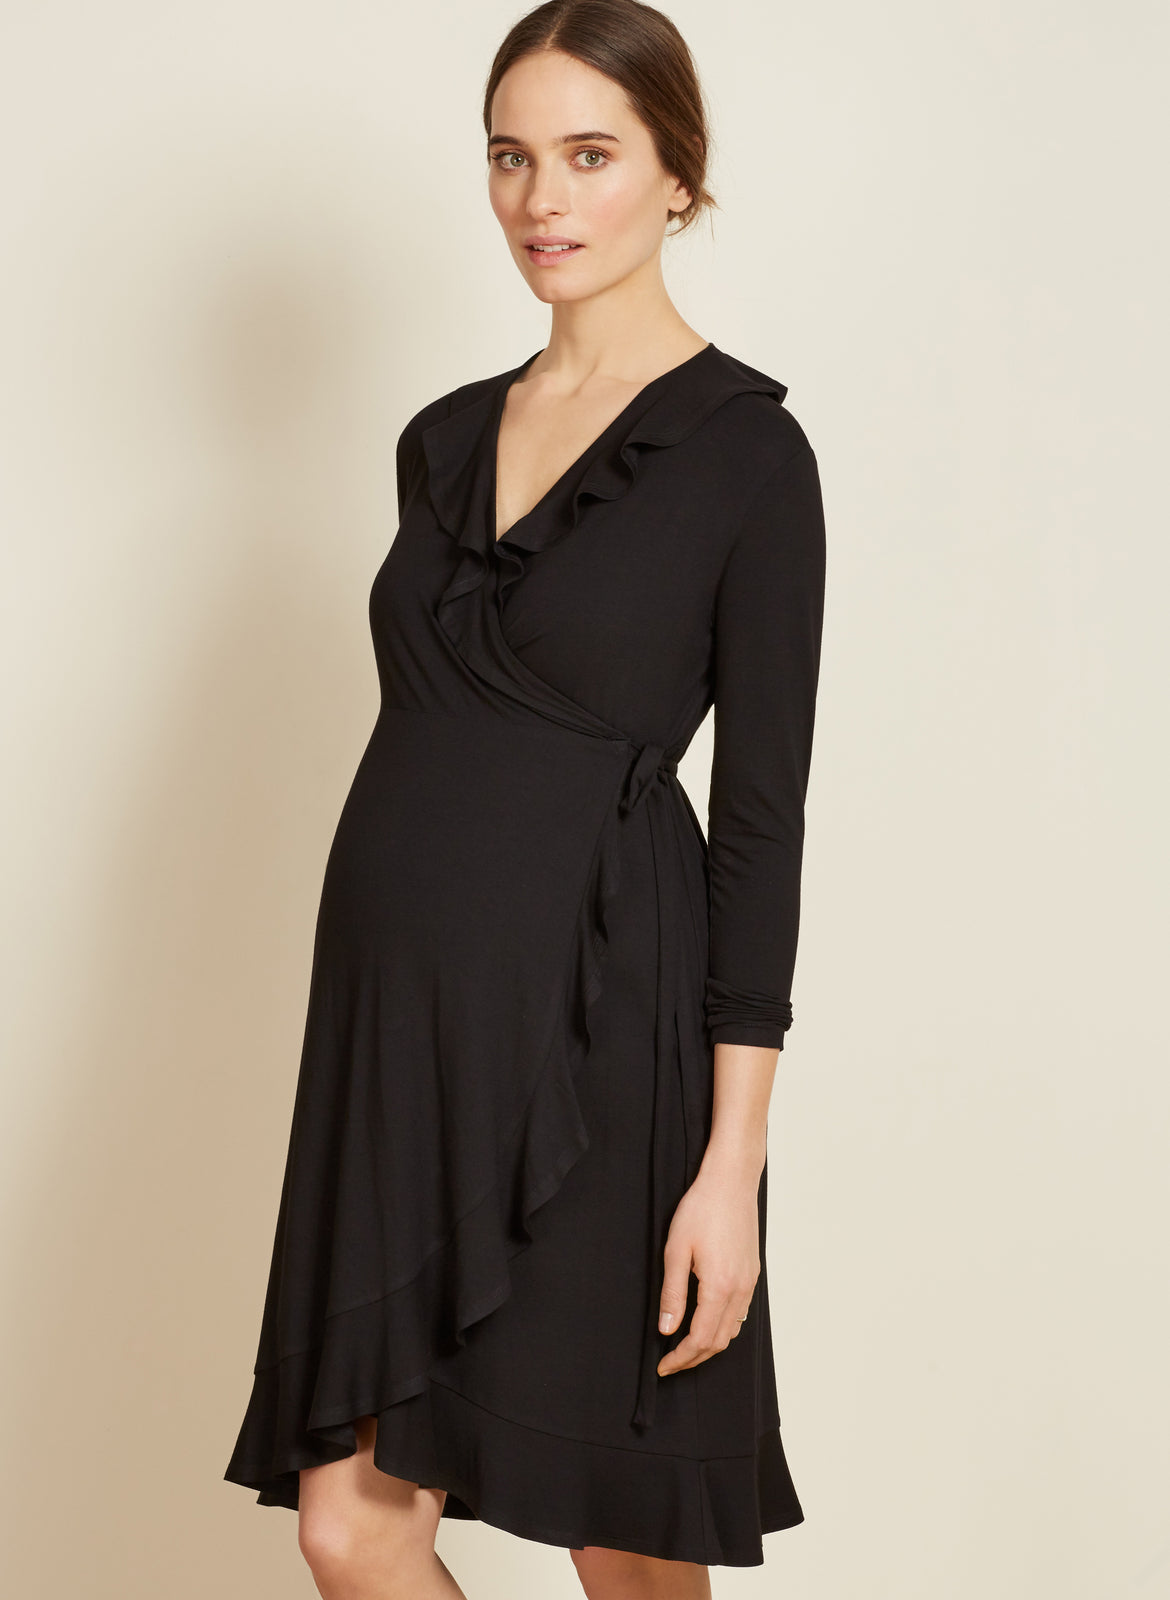 6a1d2137e1 Aurelia Maternity Wrap Dress – Isabella Oliver US